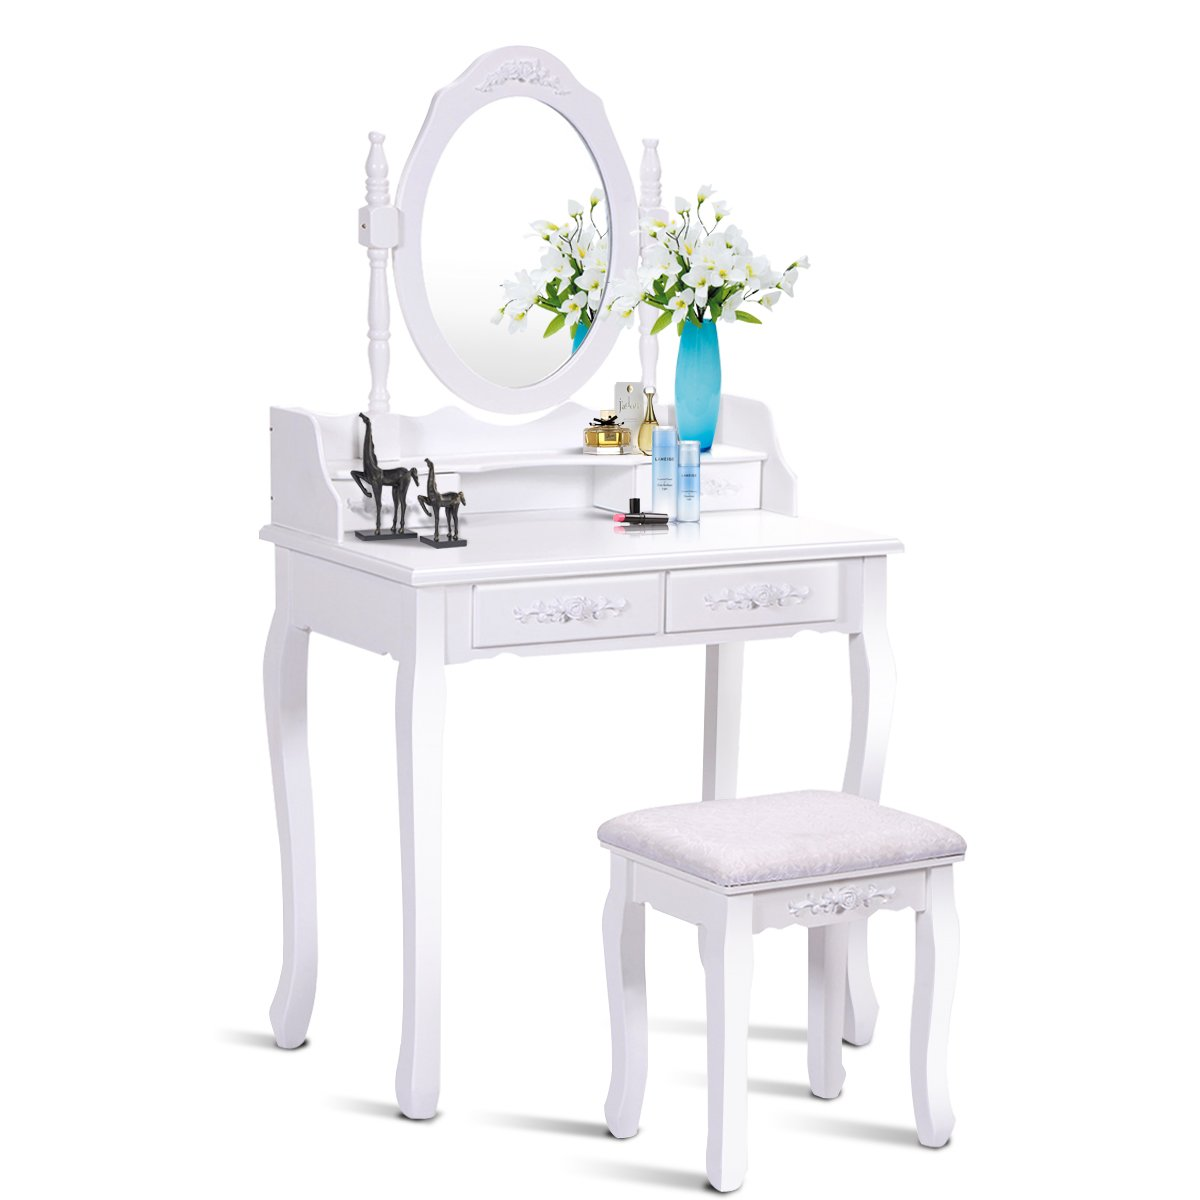 Giantex Vanity Set Dressing Table with Stool, Wood Makeup Bedroom Vanities Oval Mirror Cushioned Bench Removable Top Desk Cosmetics Organizers Easy Assembly, Dresser Vanity Tables w/ 4 Drawers, White